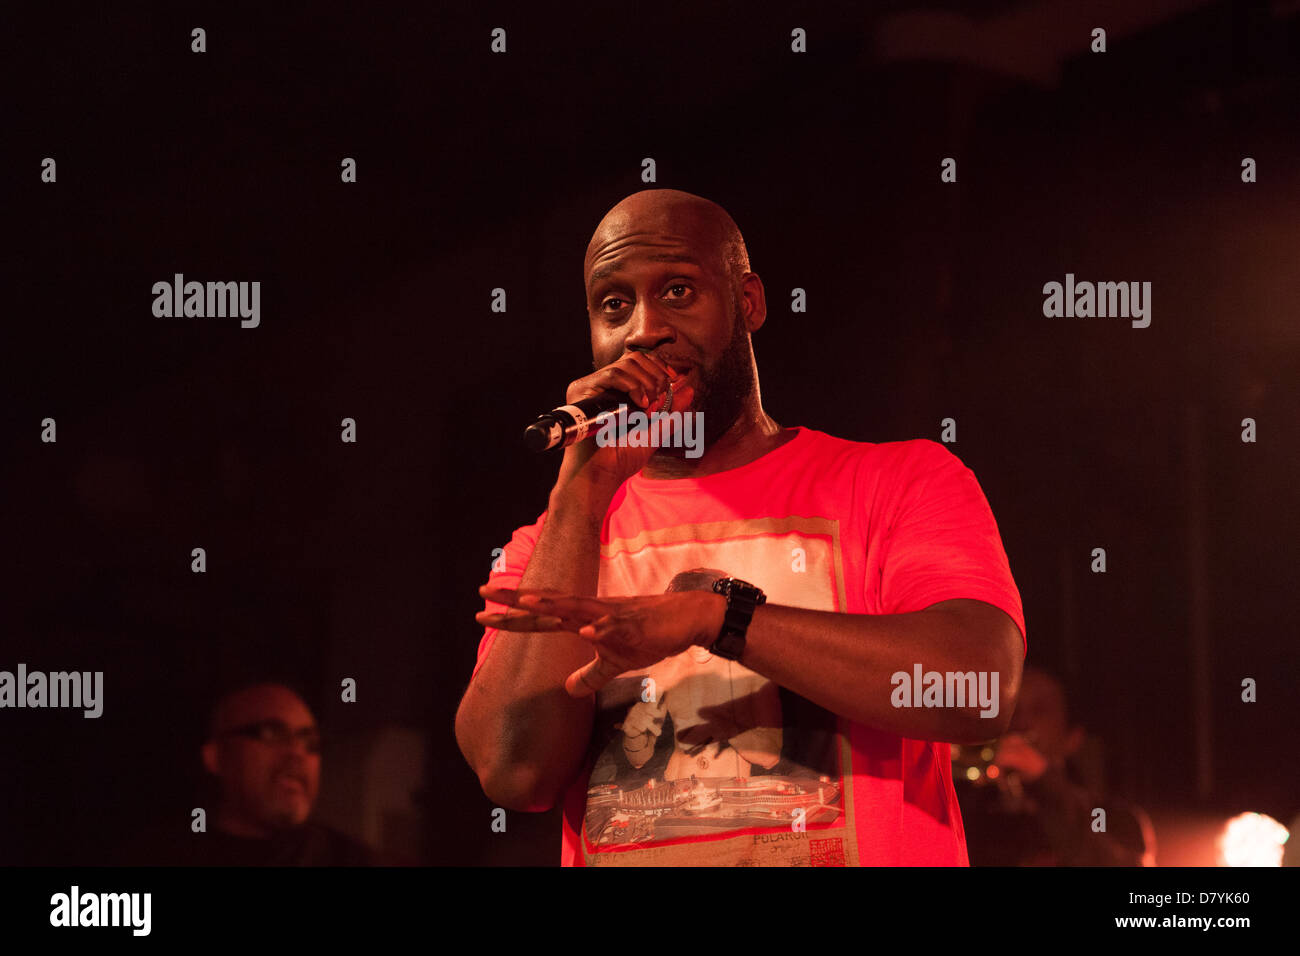 De La Soul performing at All Tomorrows Parties, Camber Sands, West Sussex, England , United Kingdom. - Stock Image